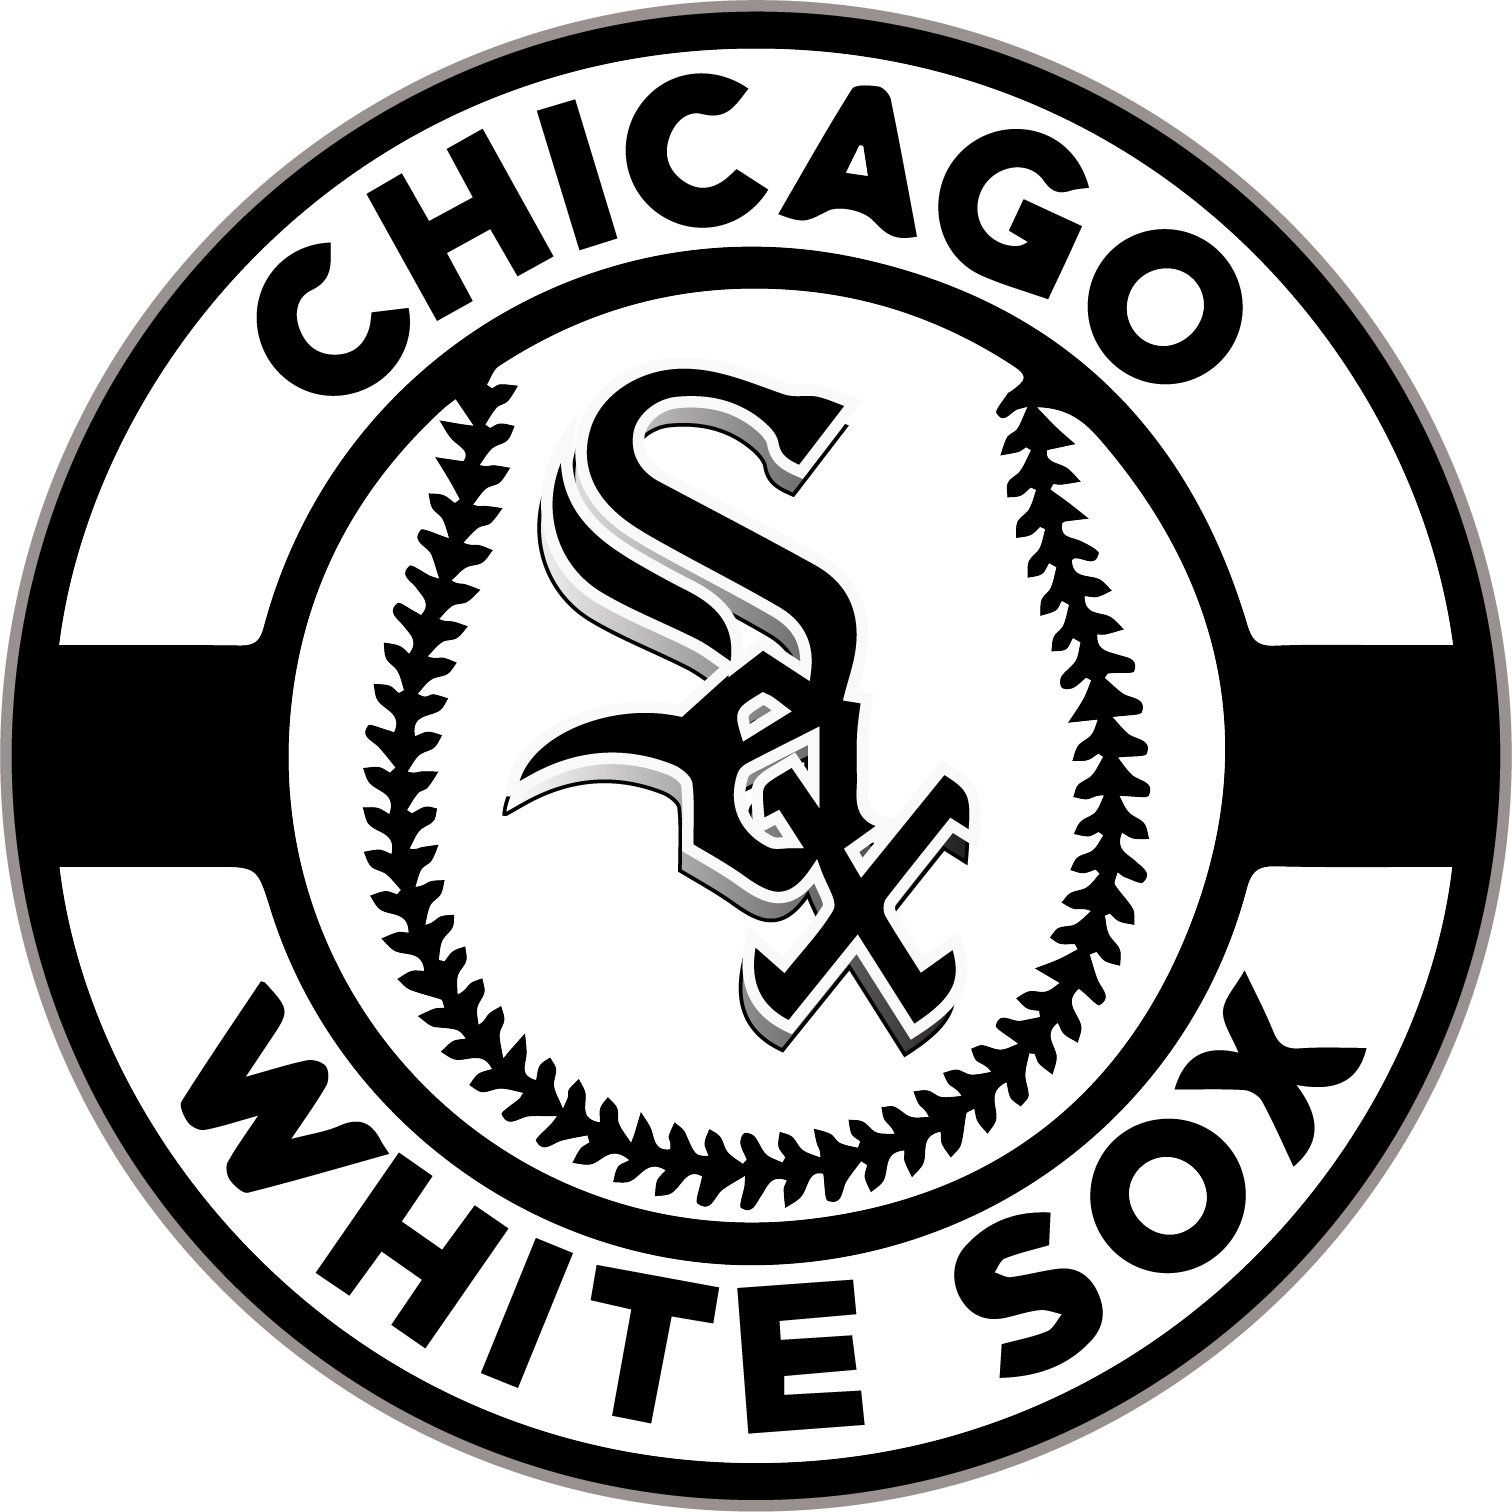 Chicago White Sox Vinyl Decal for laptop windows wall car boat a